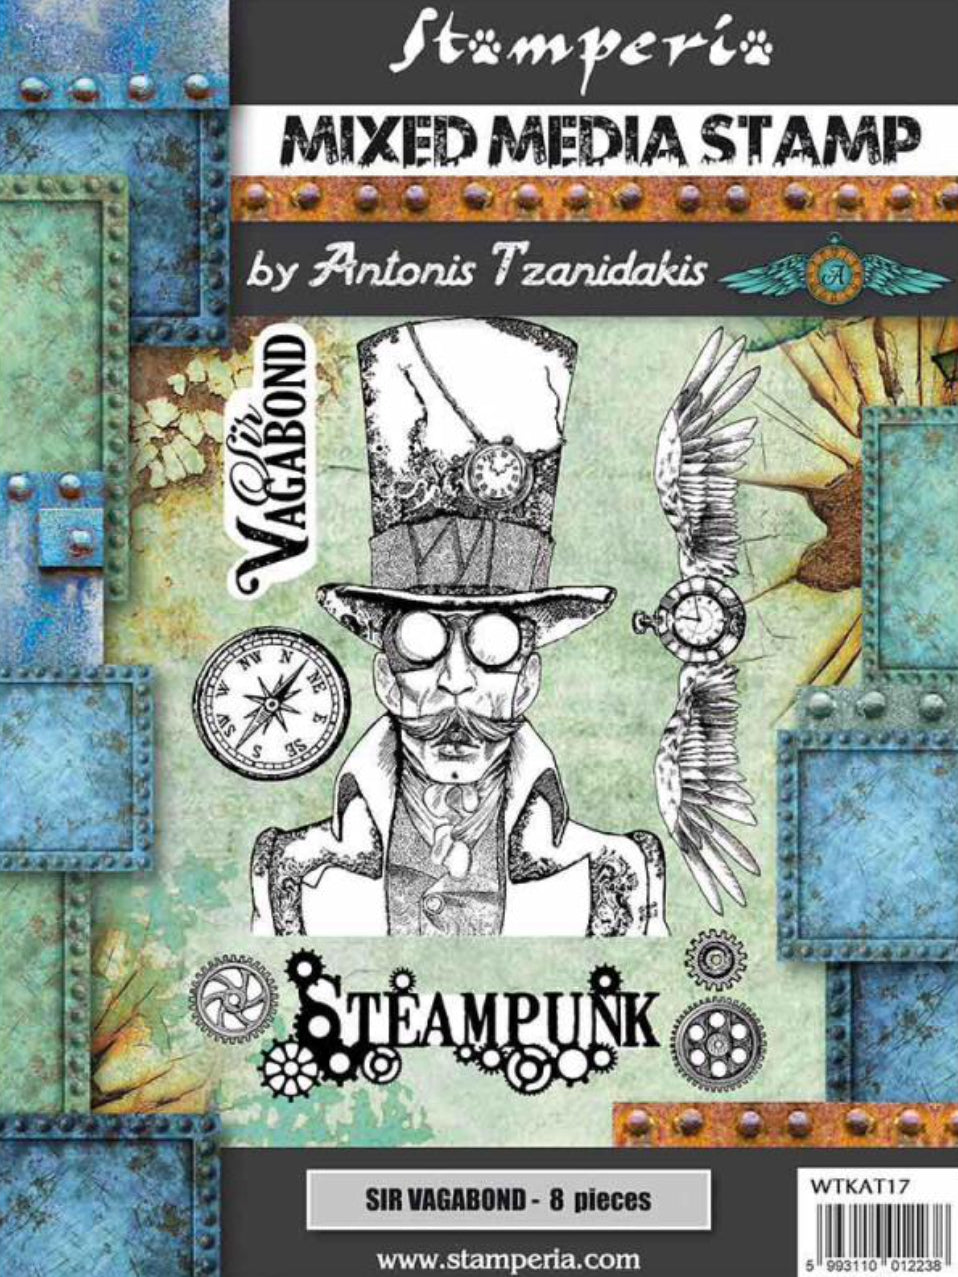 Stamperia Mixed Media Stamp Set by Antonis Tzanidakis - Steampunk WTKAT17 - 15cm x 20cm